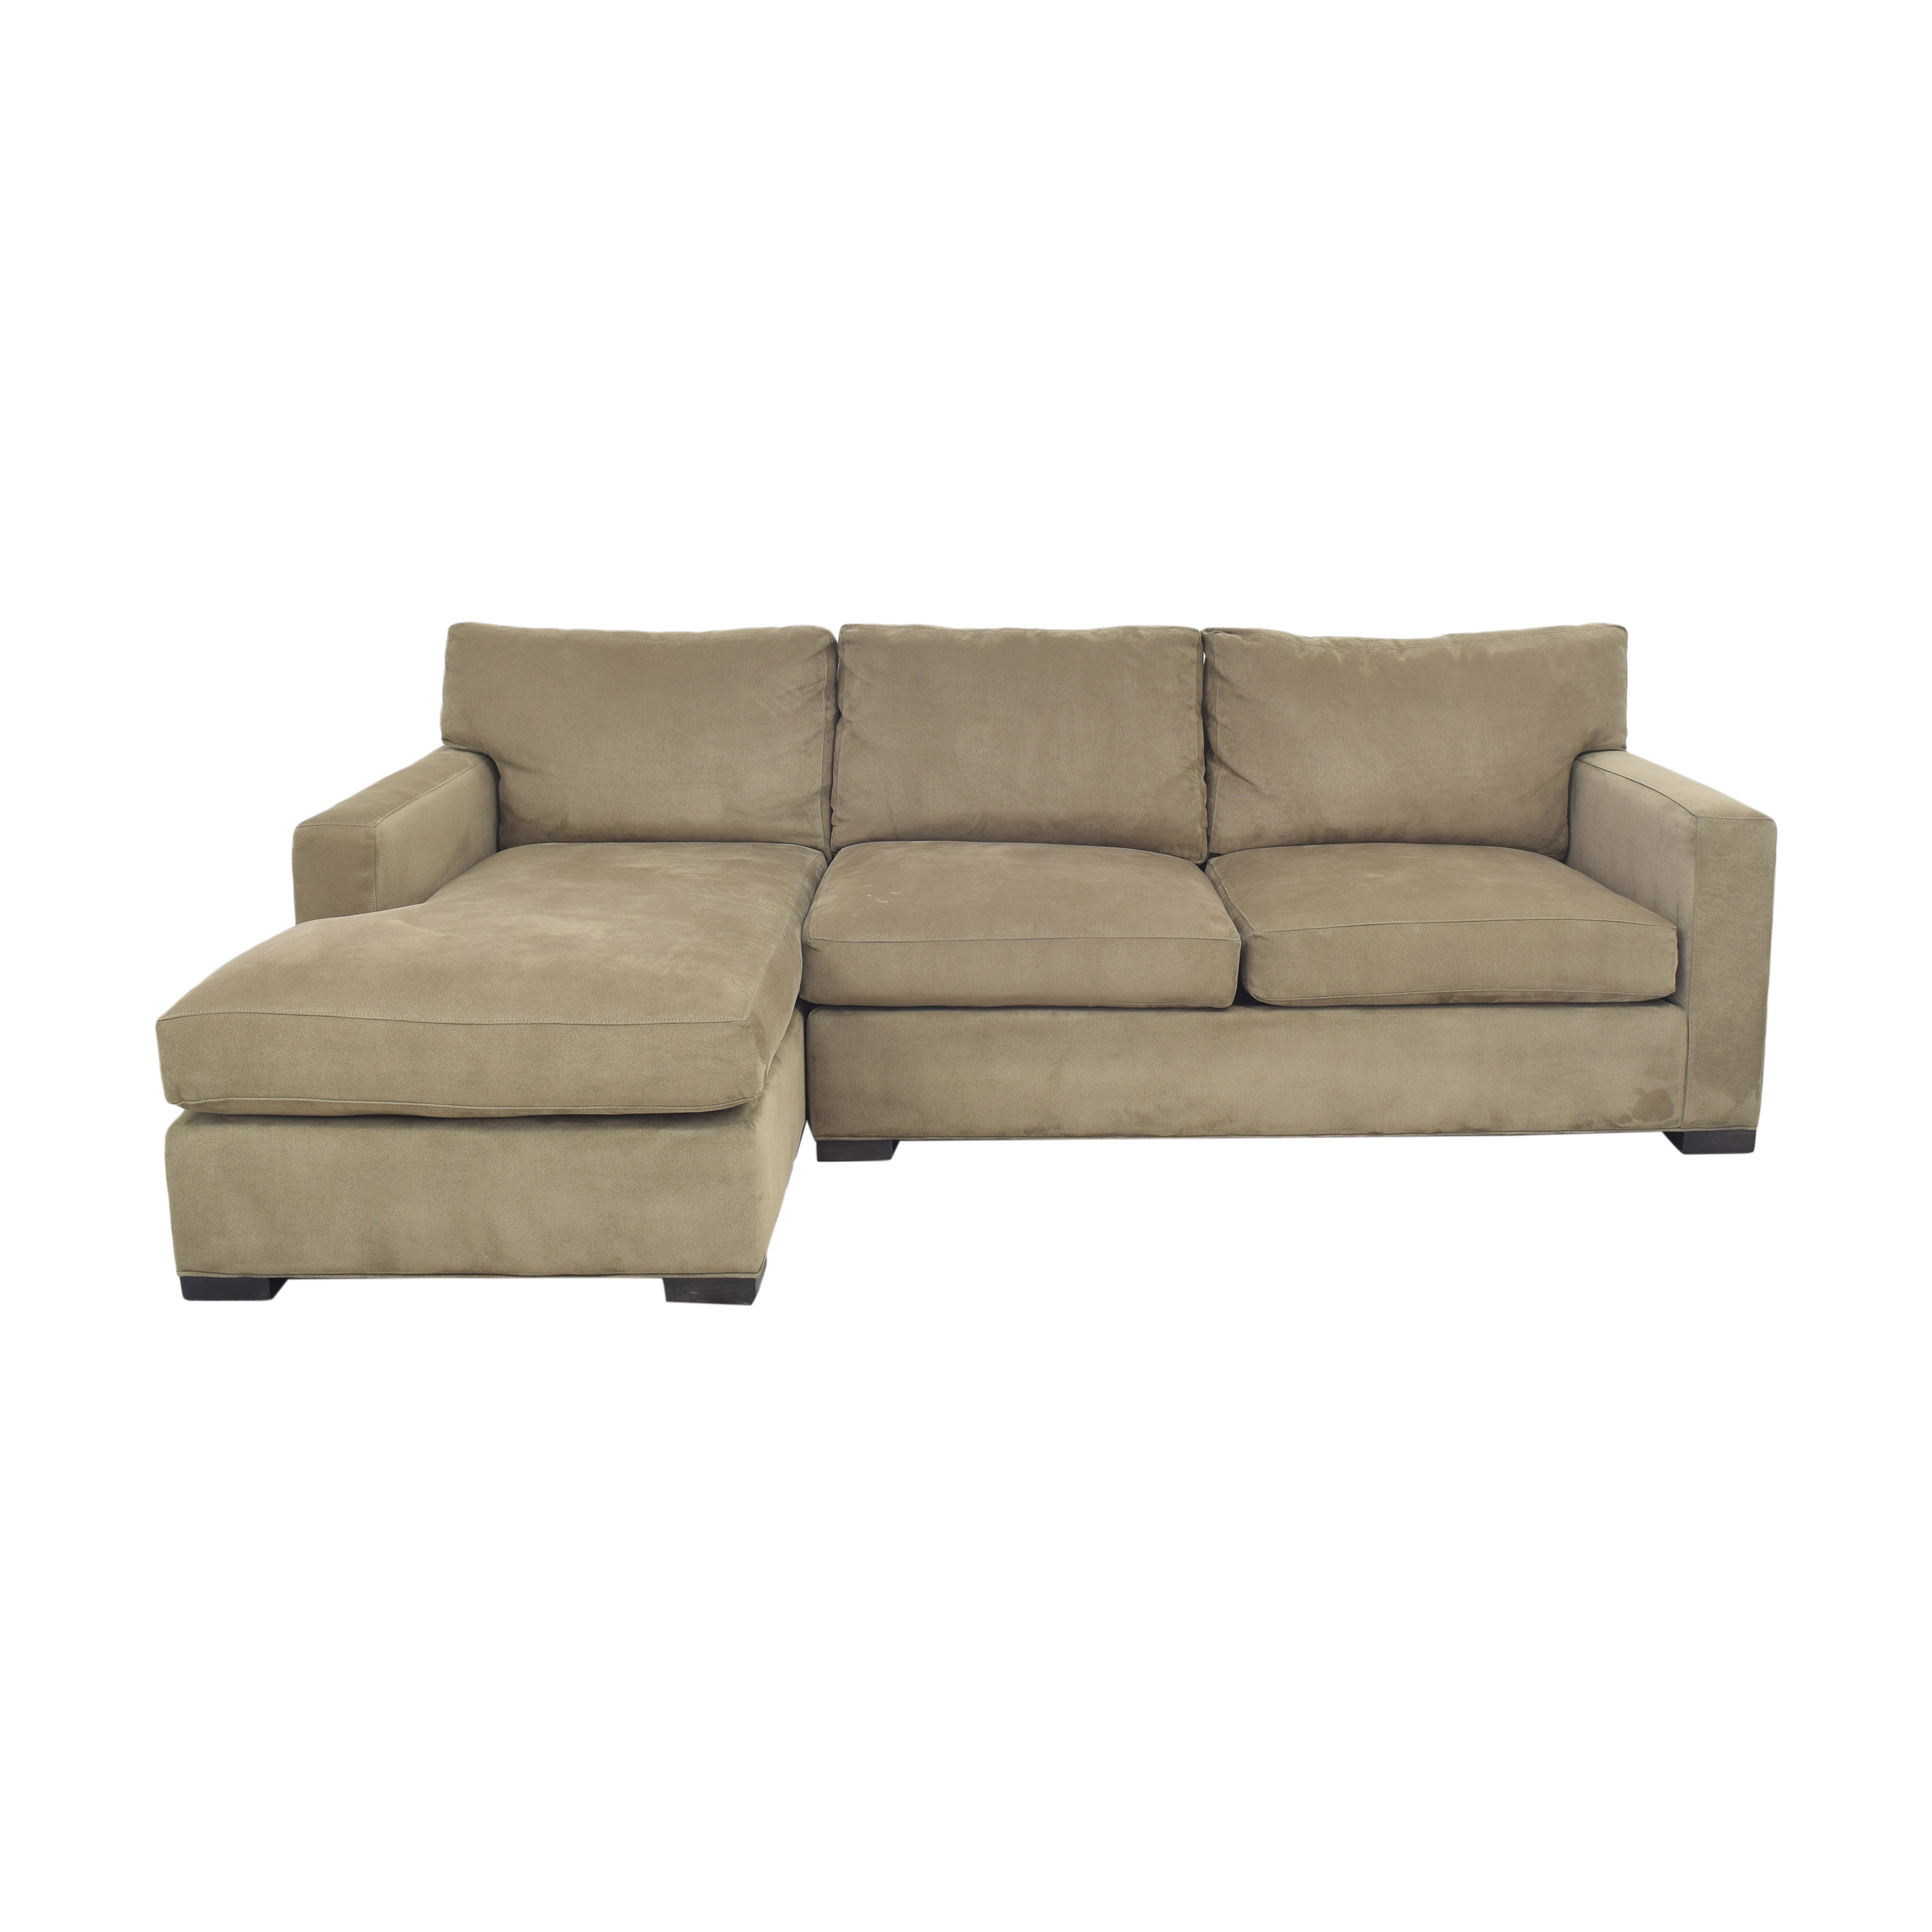 Crate & Barrel Axis II Two Piece Sectional Sofa Crate & Barrel